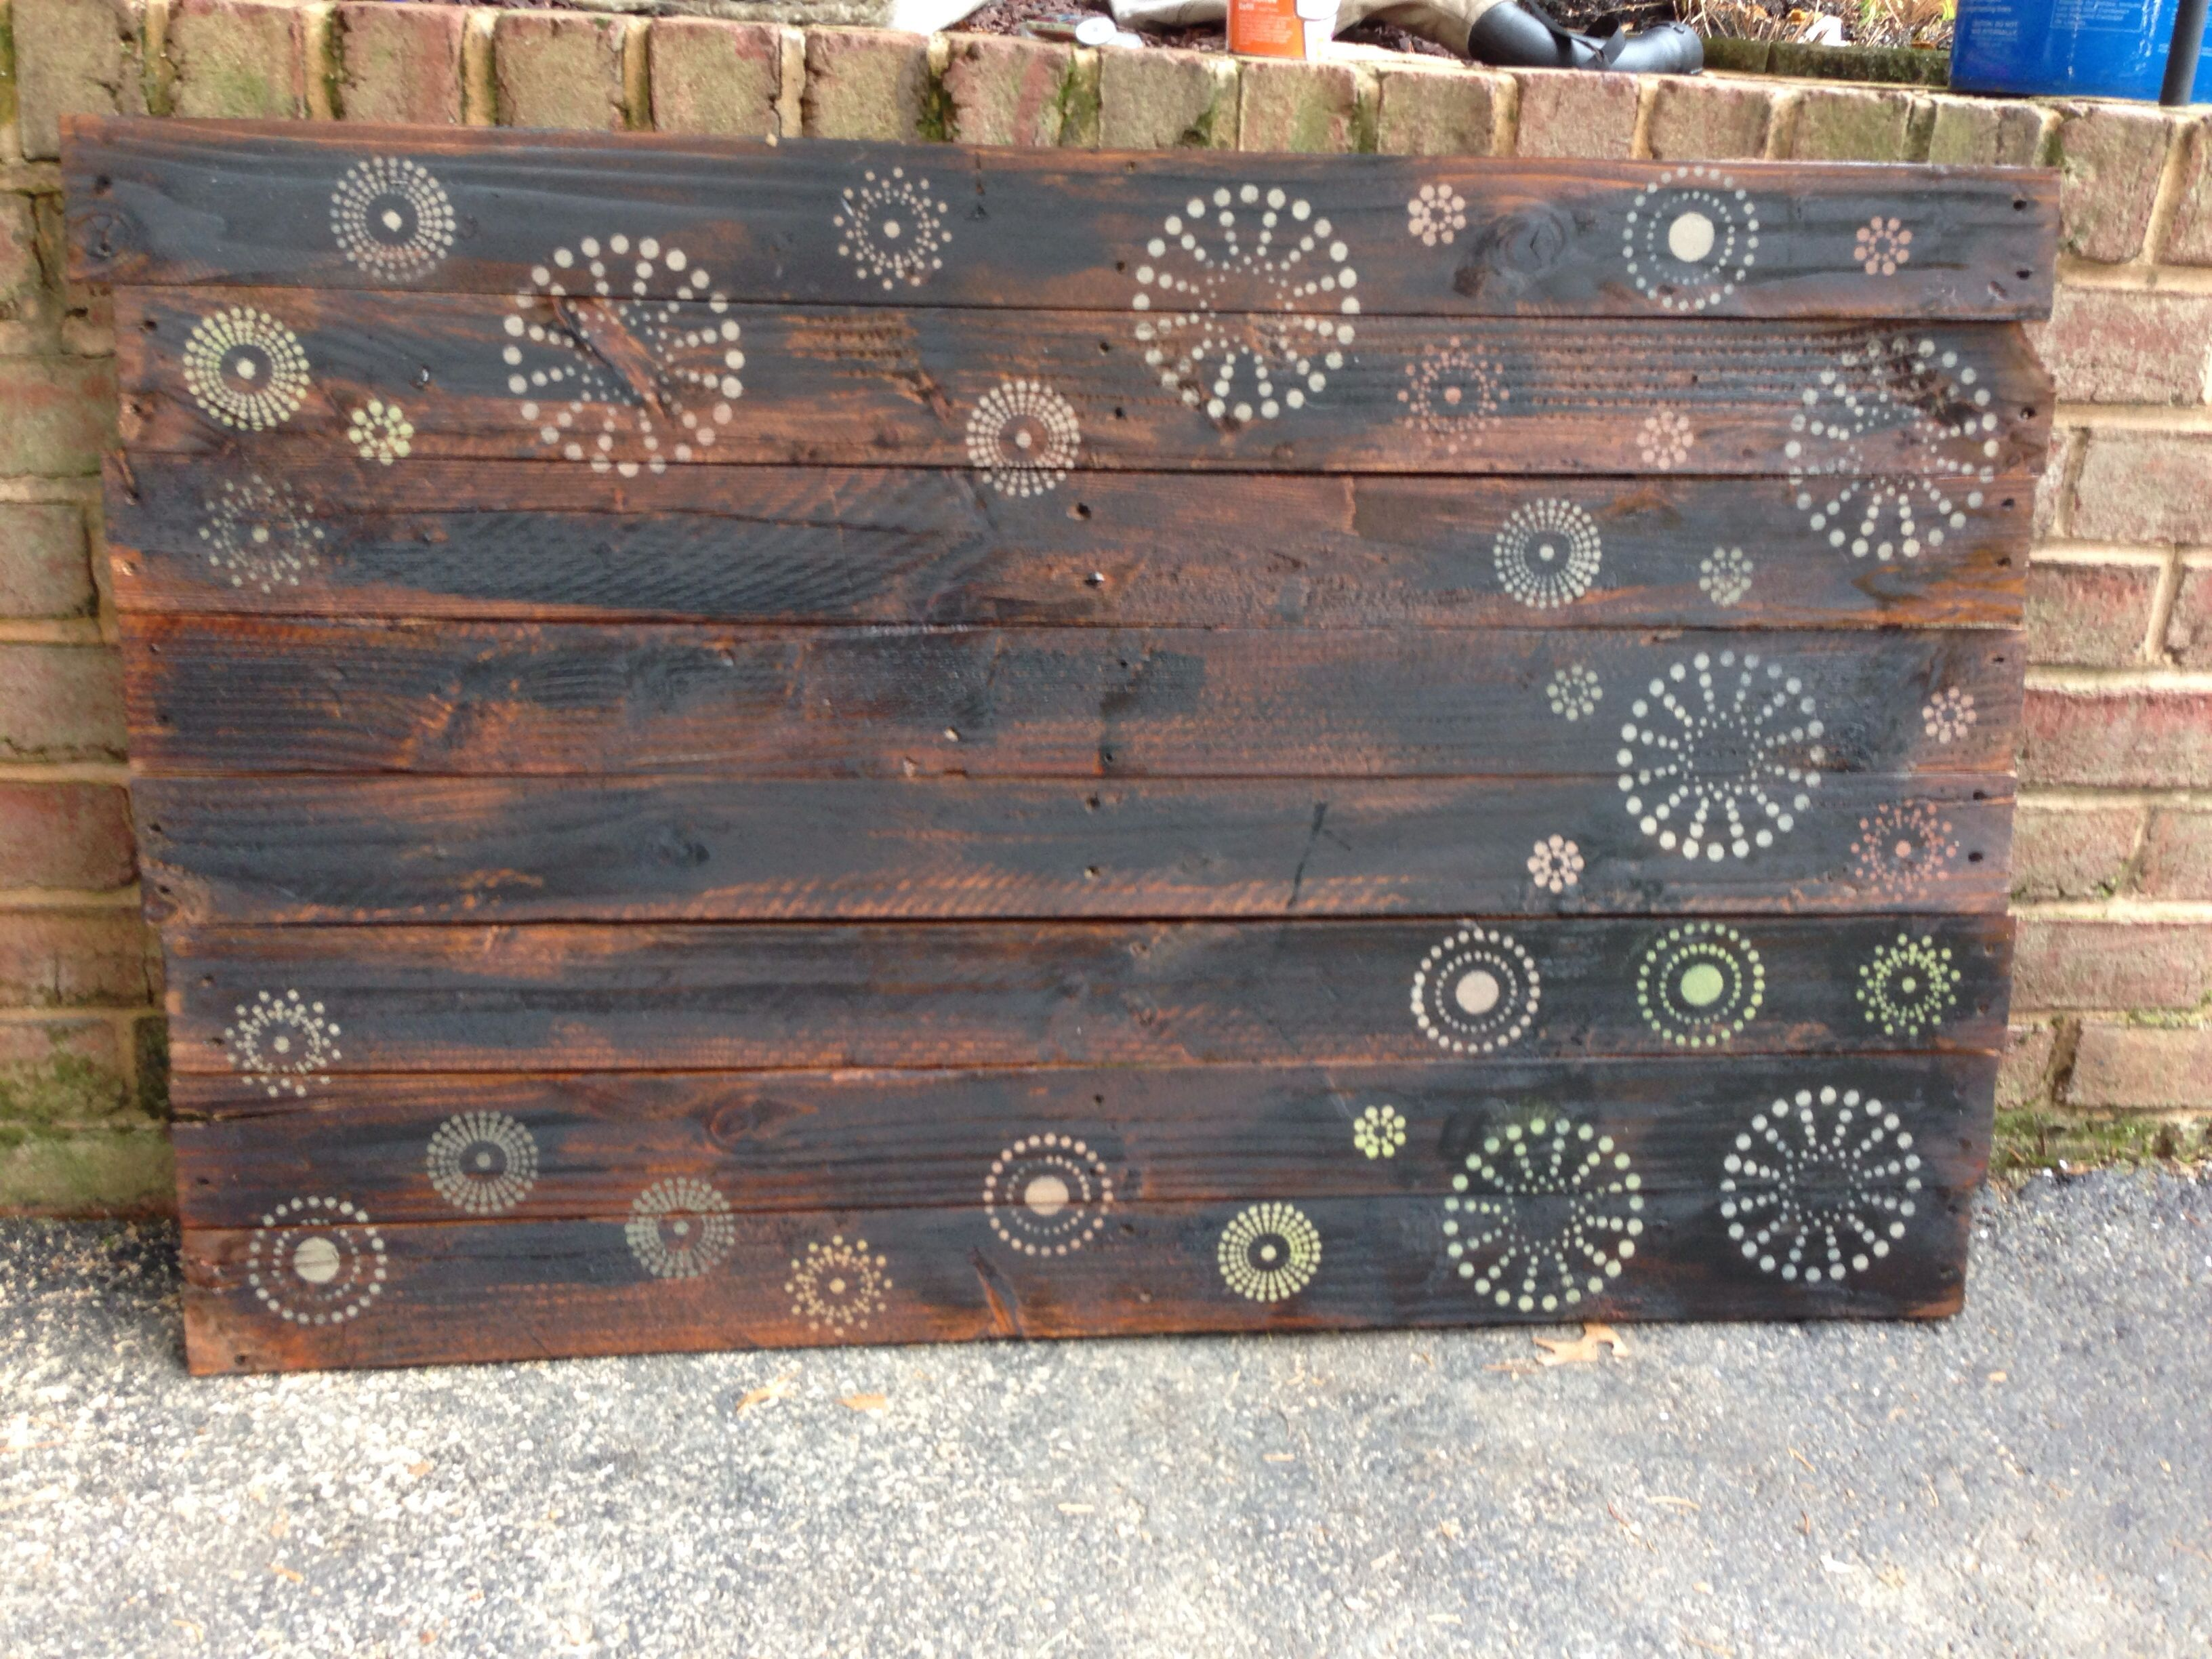 Wood Pallet Wall Art wood pallet wall art | wood pallet projects | pinterest | pallet